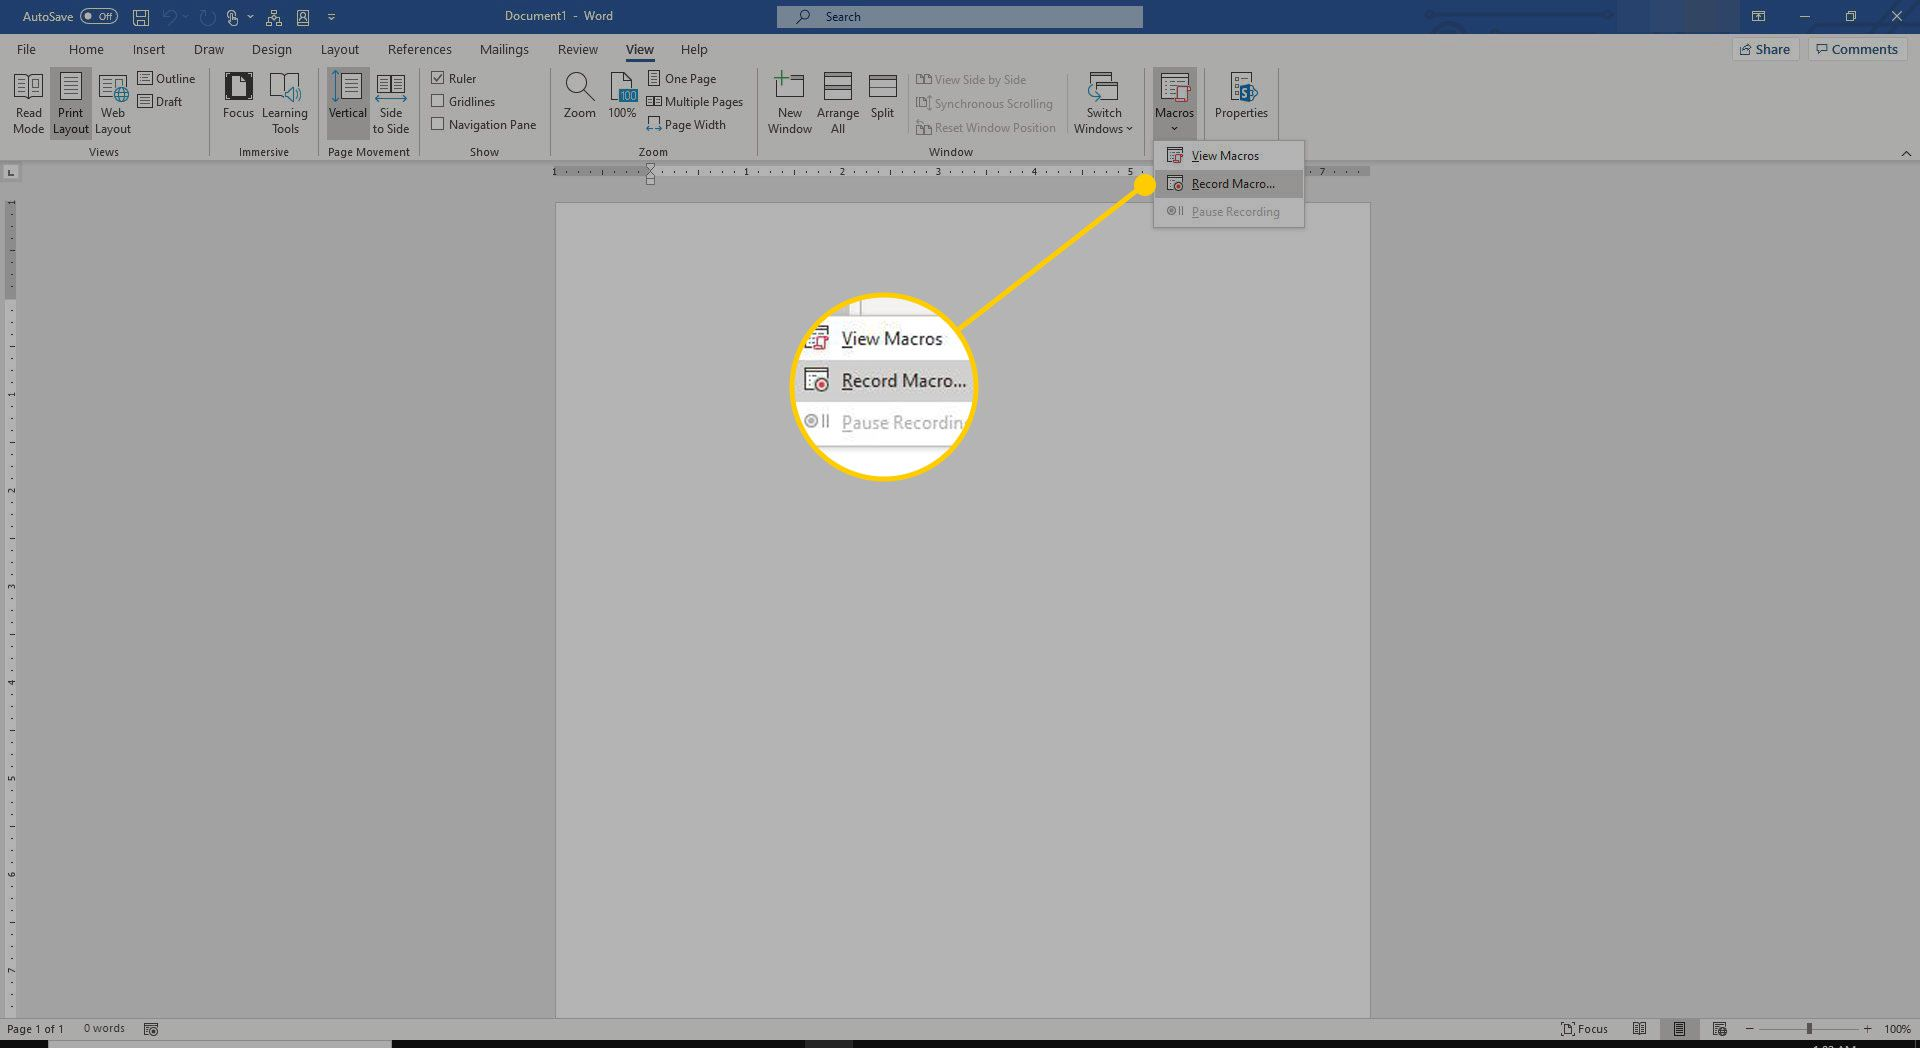 Record Macro command in Word